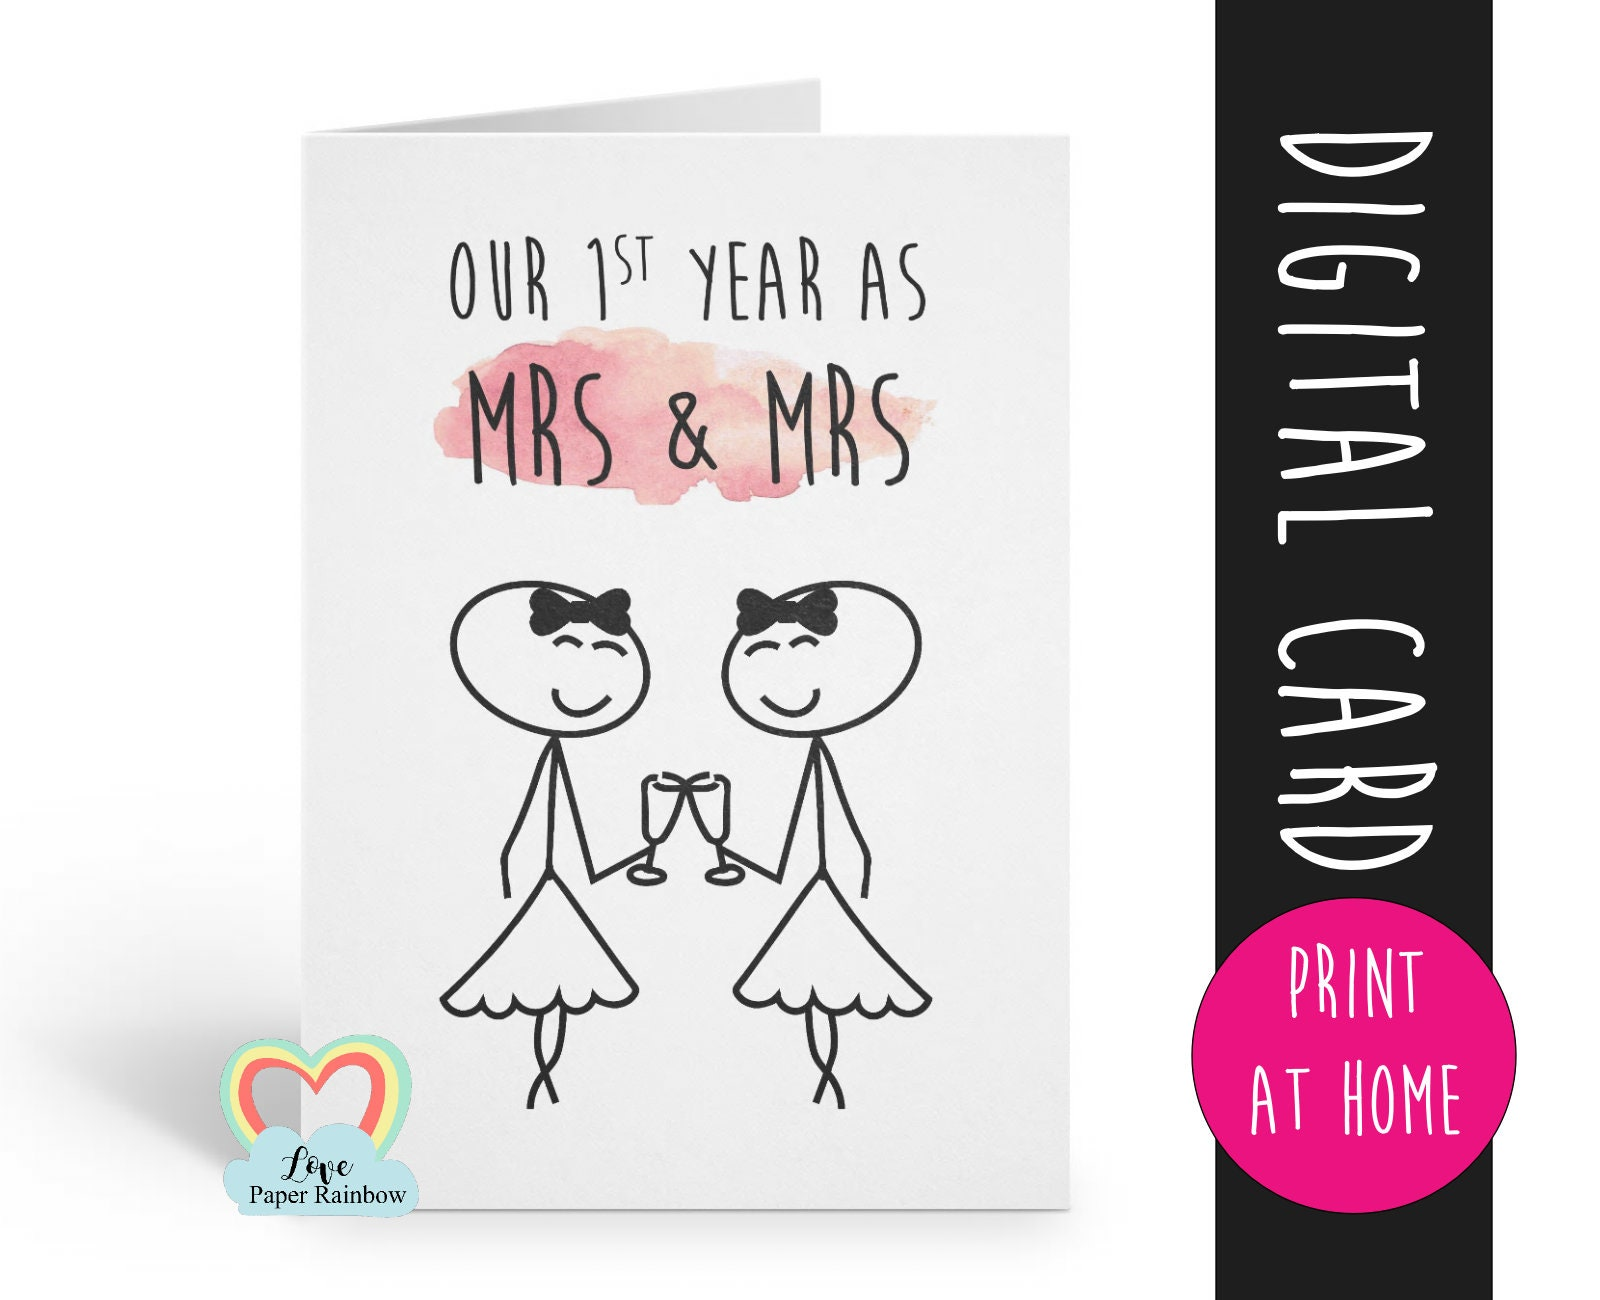 photo about Printable Anniversary Card referred to as PRINTABLE anniversary card, our 1st calendar year as mrs and mrs